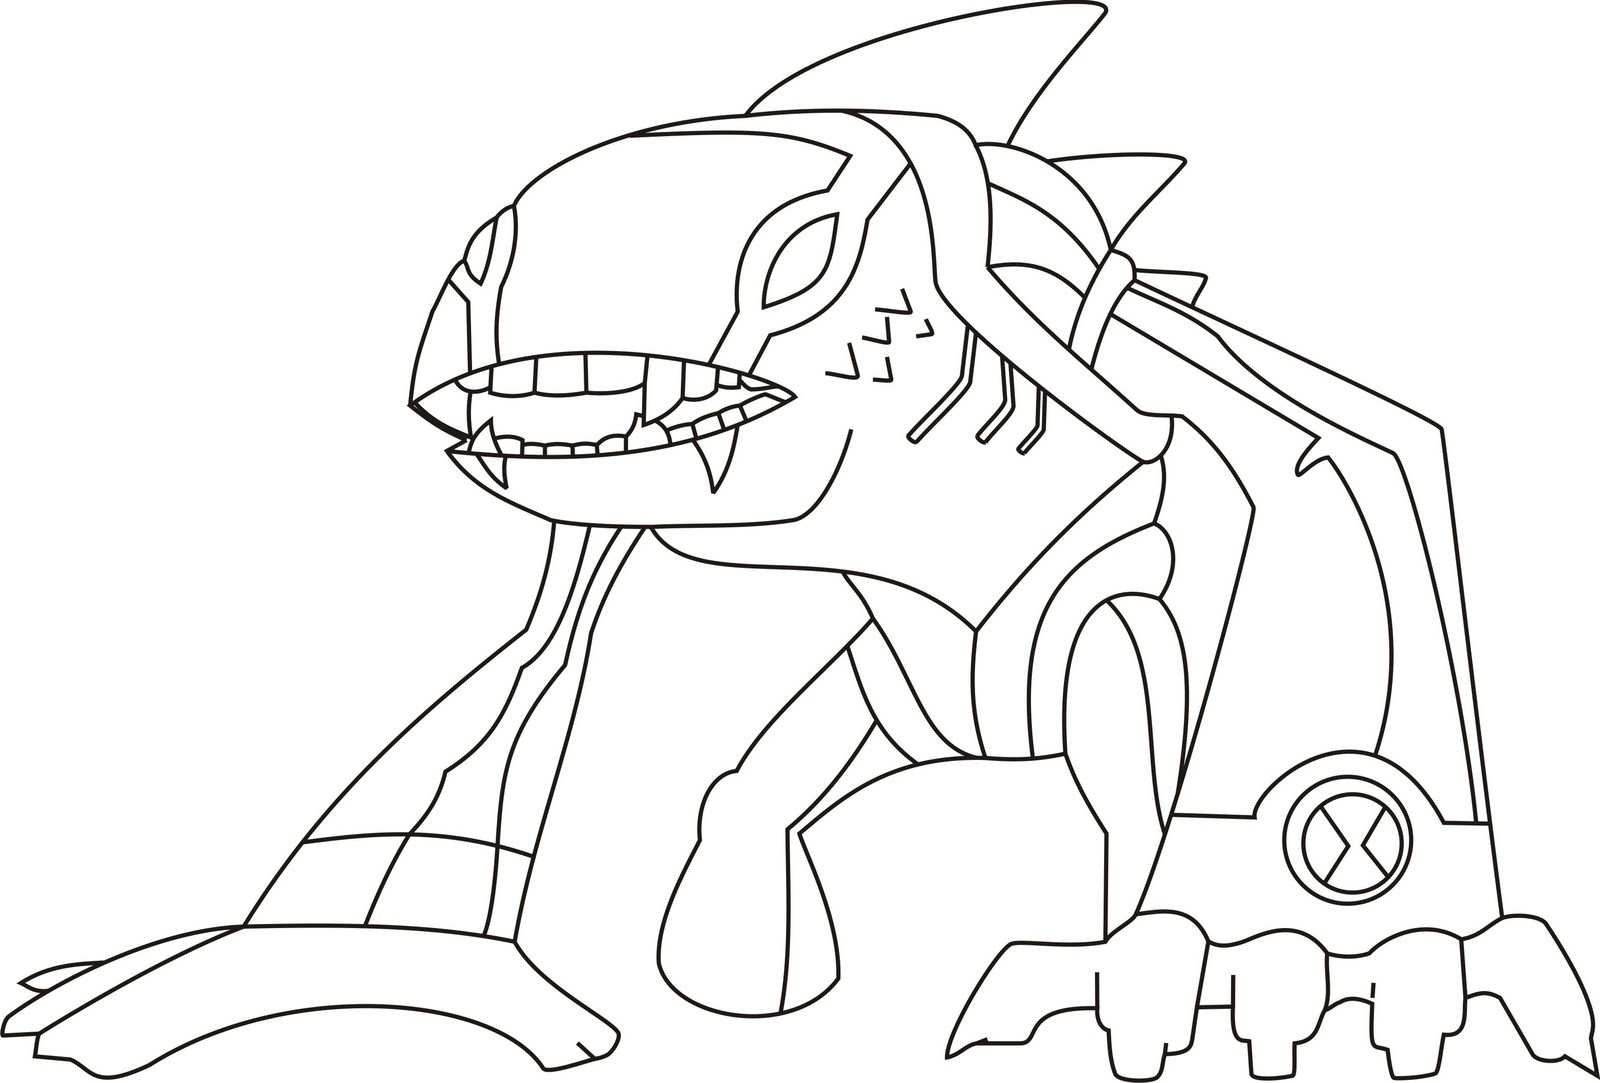 Ben 10 coloring pages superhero coloring pages get ben 10 coloring pages and make this wallpaper for your desktop tablet or smartphone device for best results you can choose original size to be voltagebd Gallery